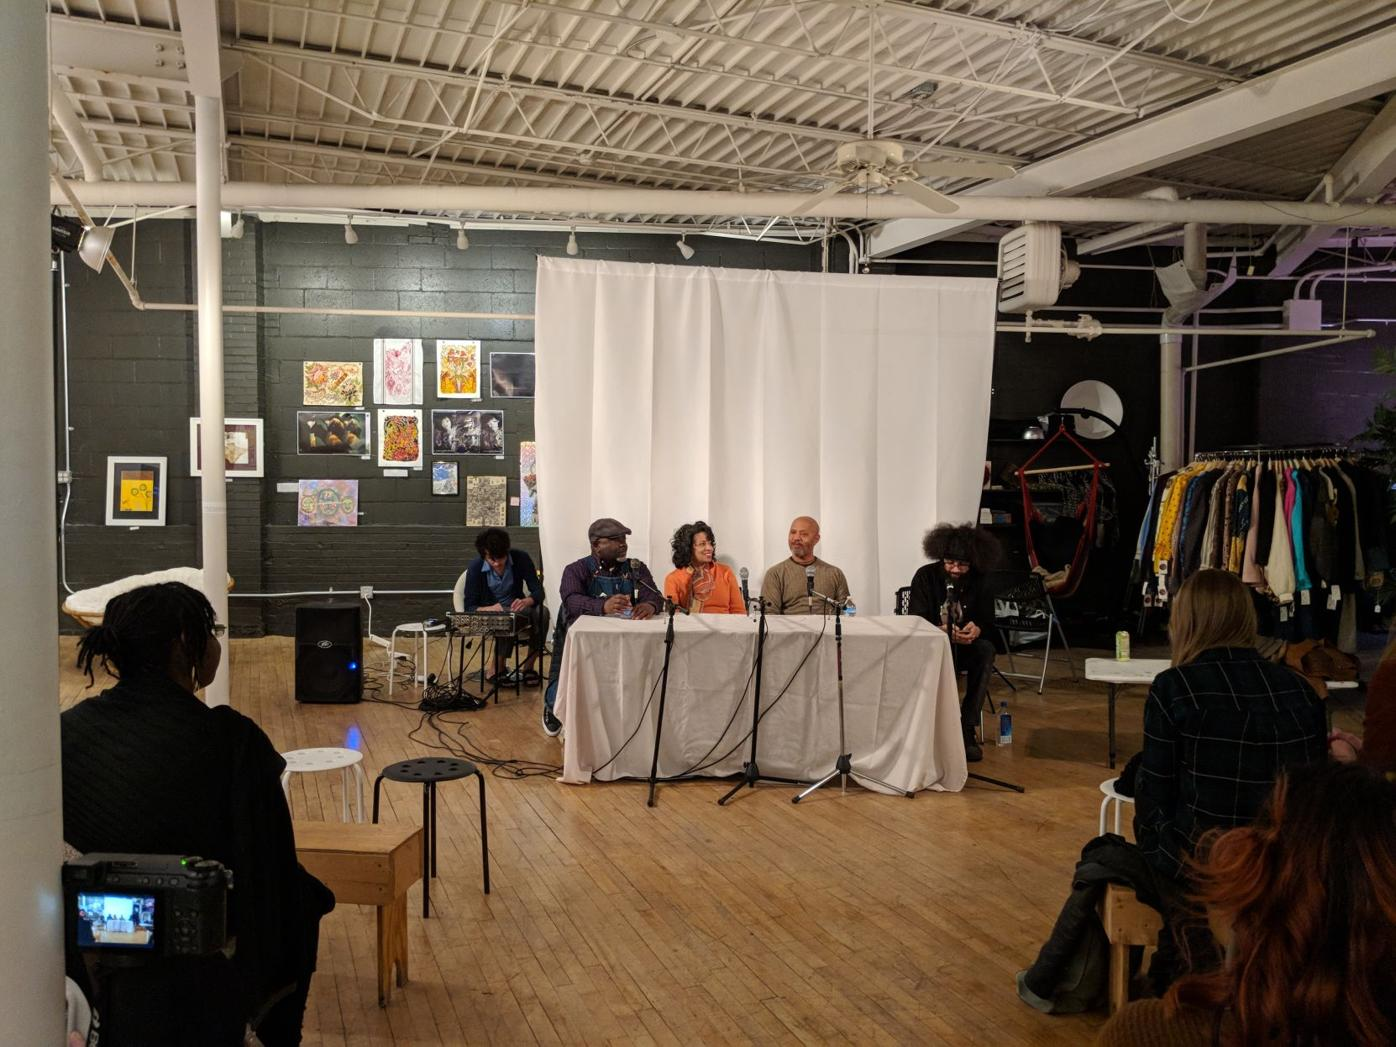 Panel discussion moderated by Justin Brown